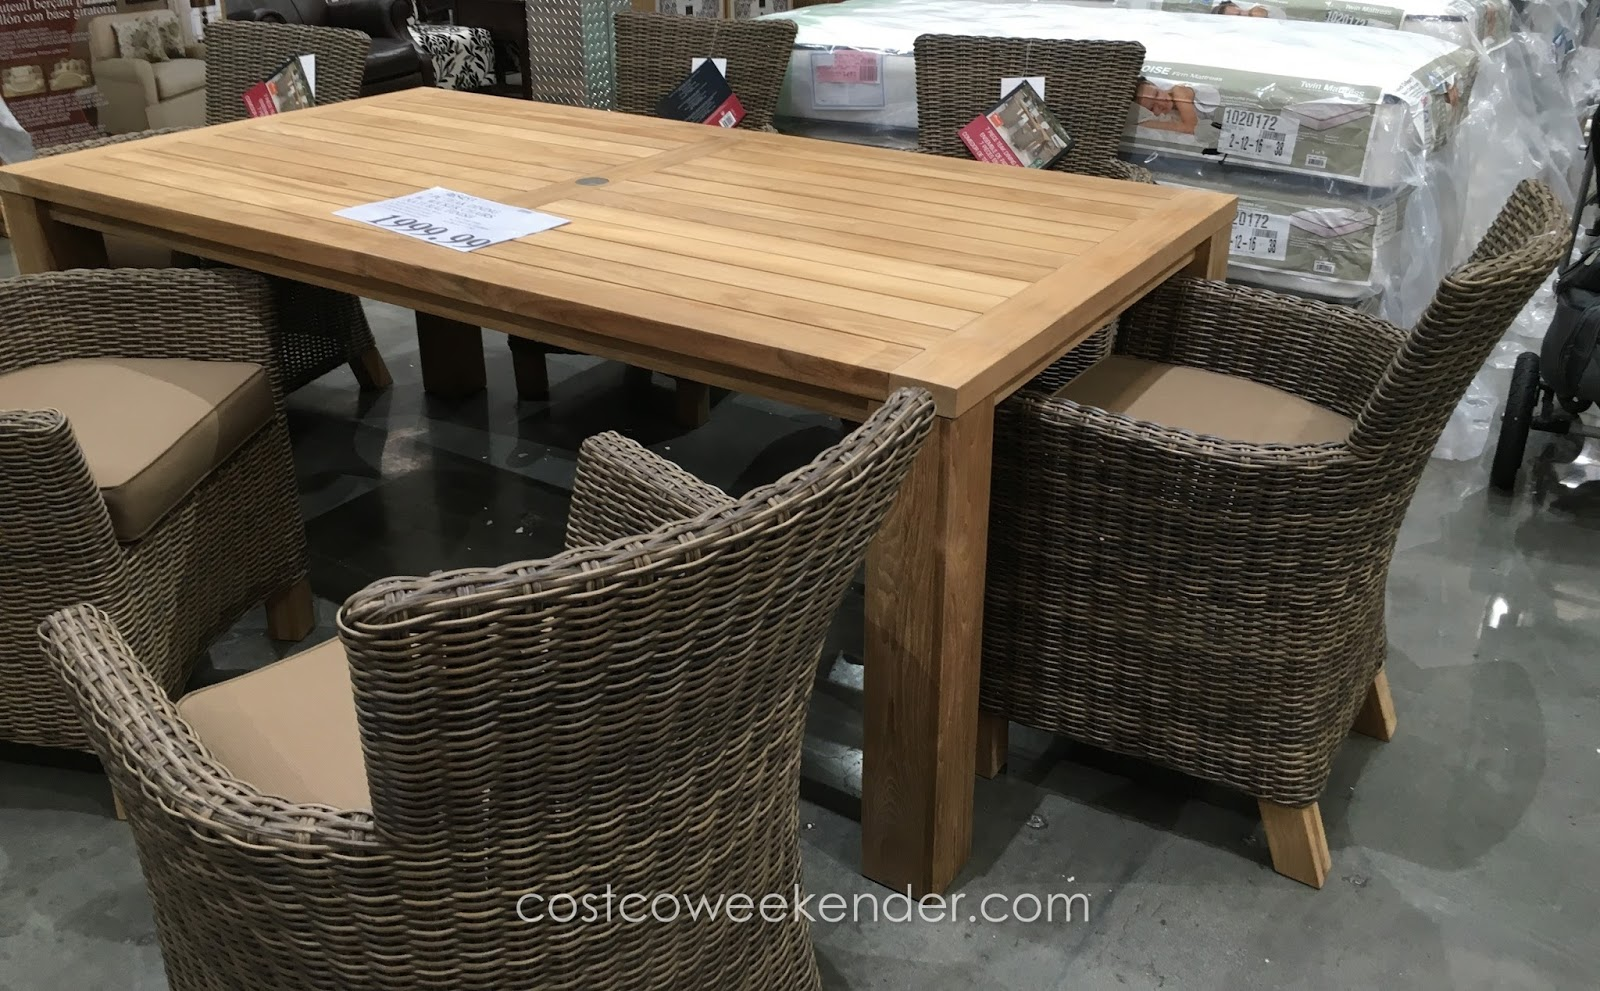 Sunbrella 7 Piece Teak Dining Set Costco Weekender